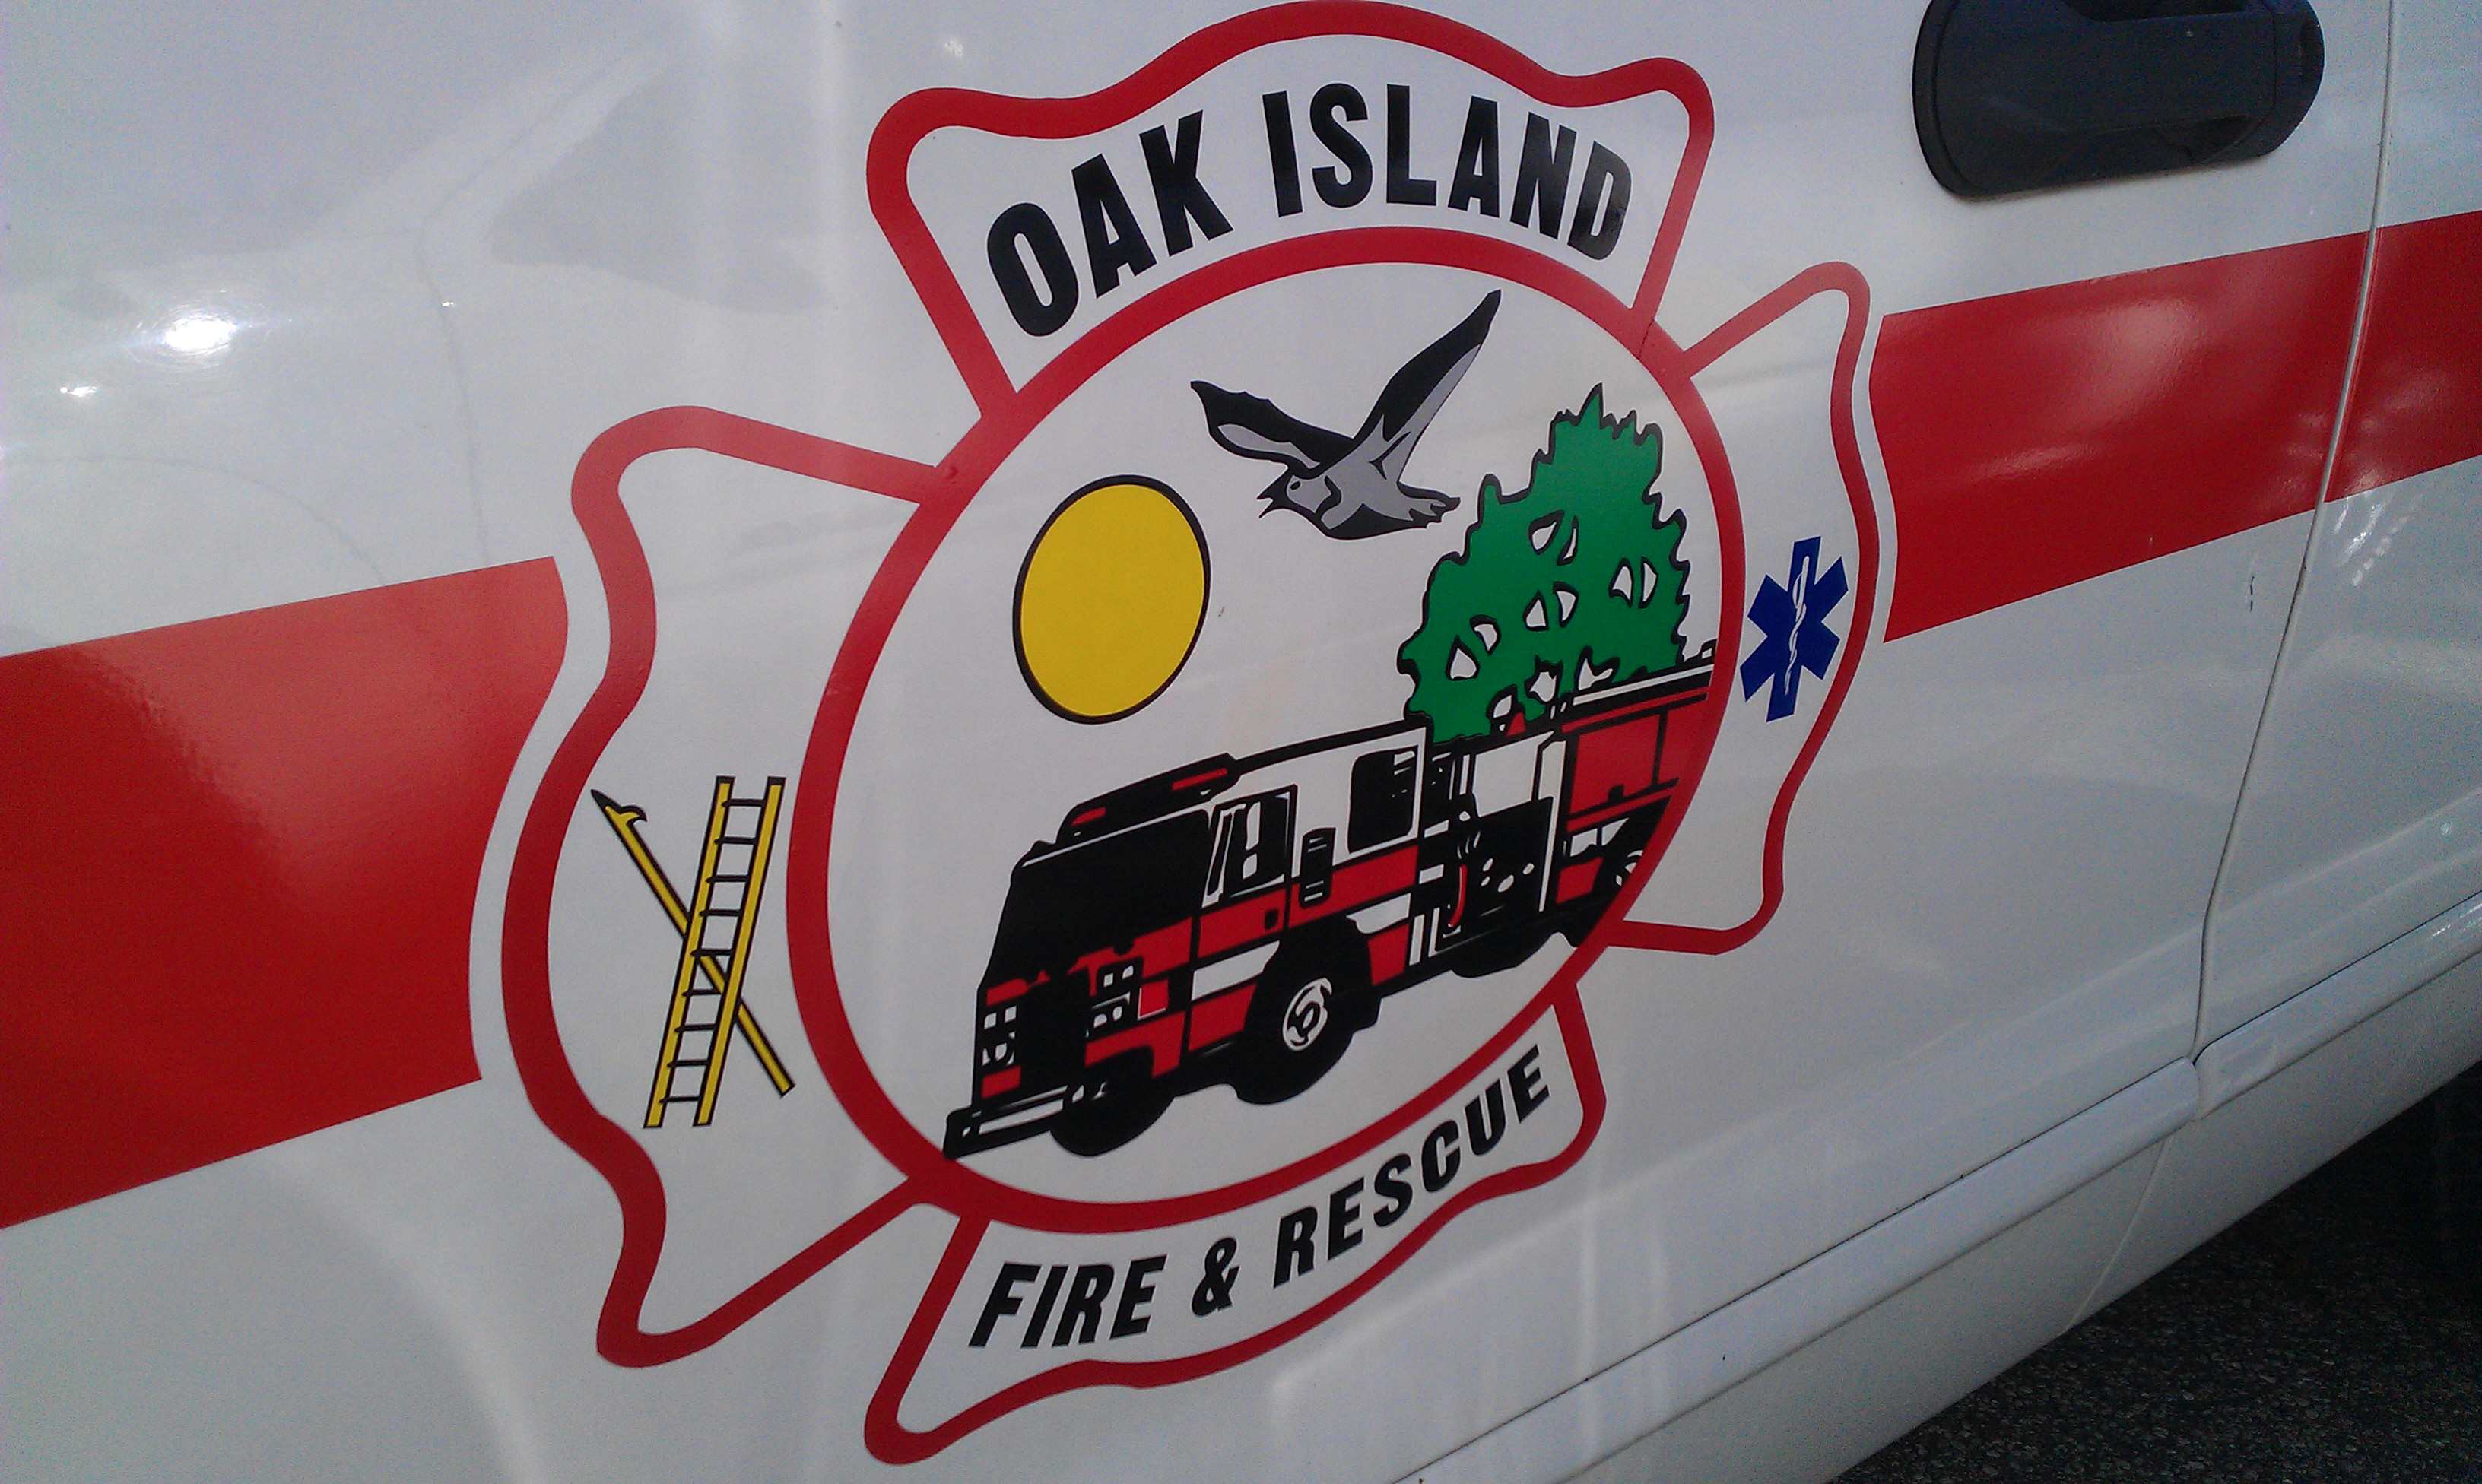 Oak Island Fire & Rescue Decal